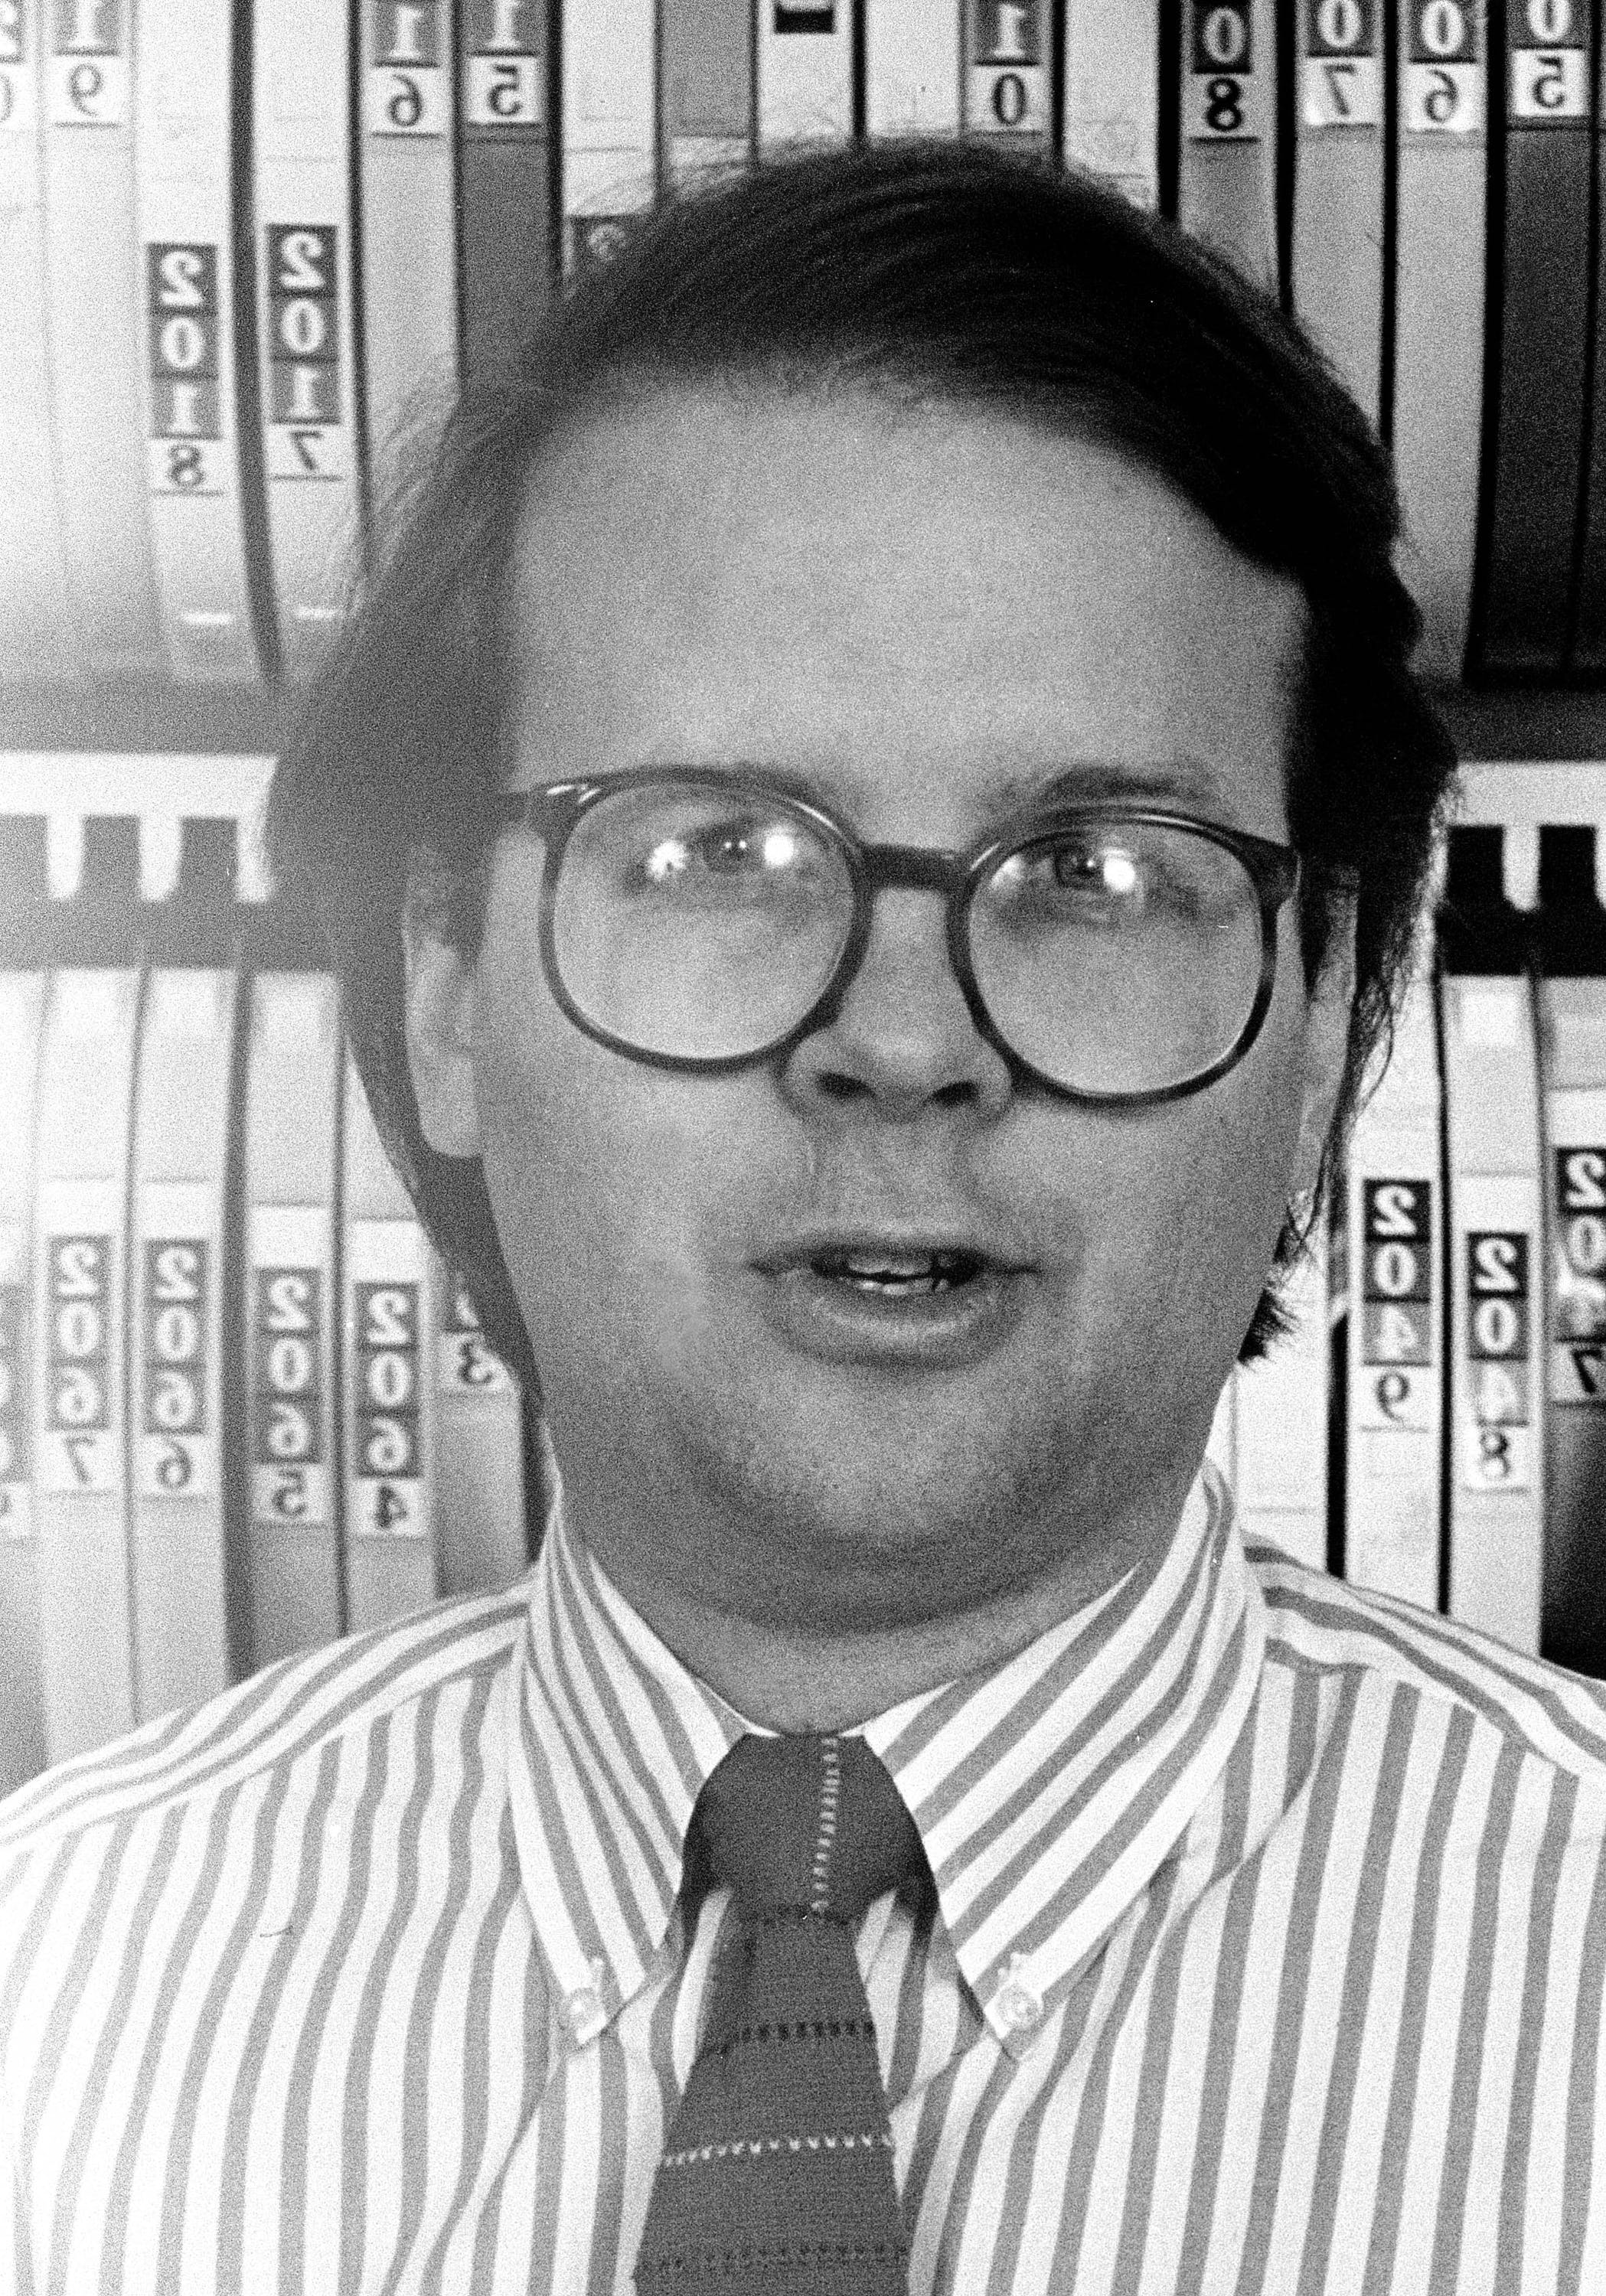 Karl Rove, campaign strategist, is pictured in 1985. (AP Photo/Bob Daemmerich)